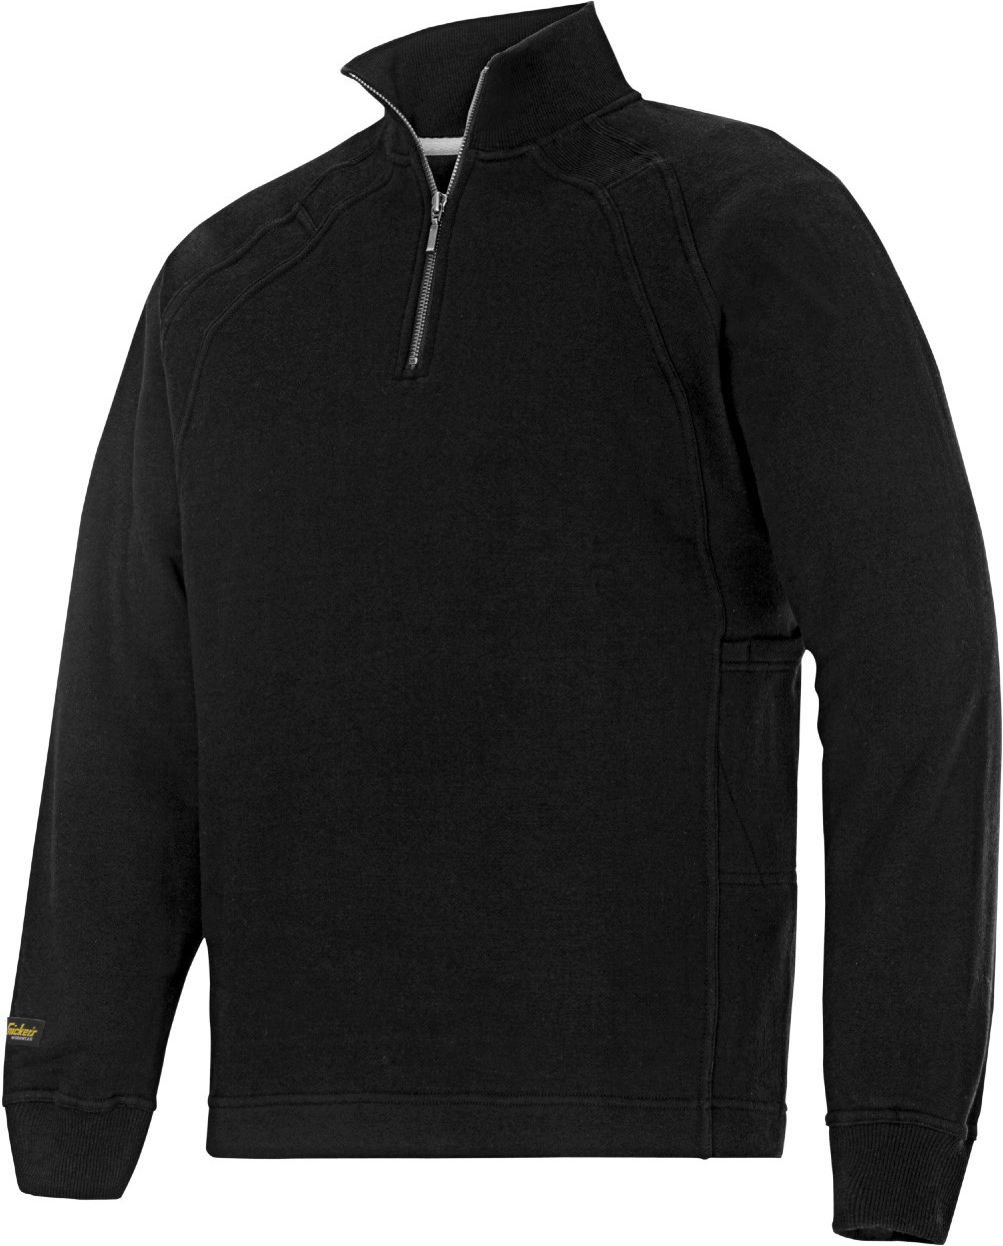 Snickers 28130400007 Sweatshirt XL Blk